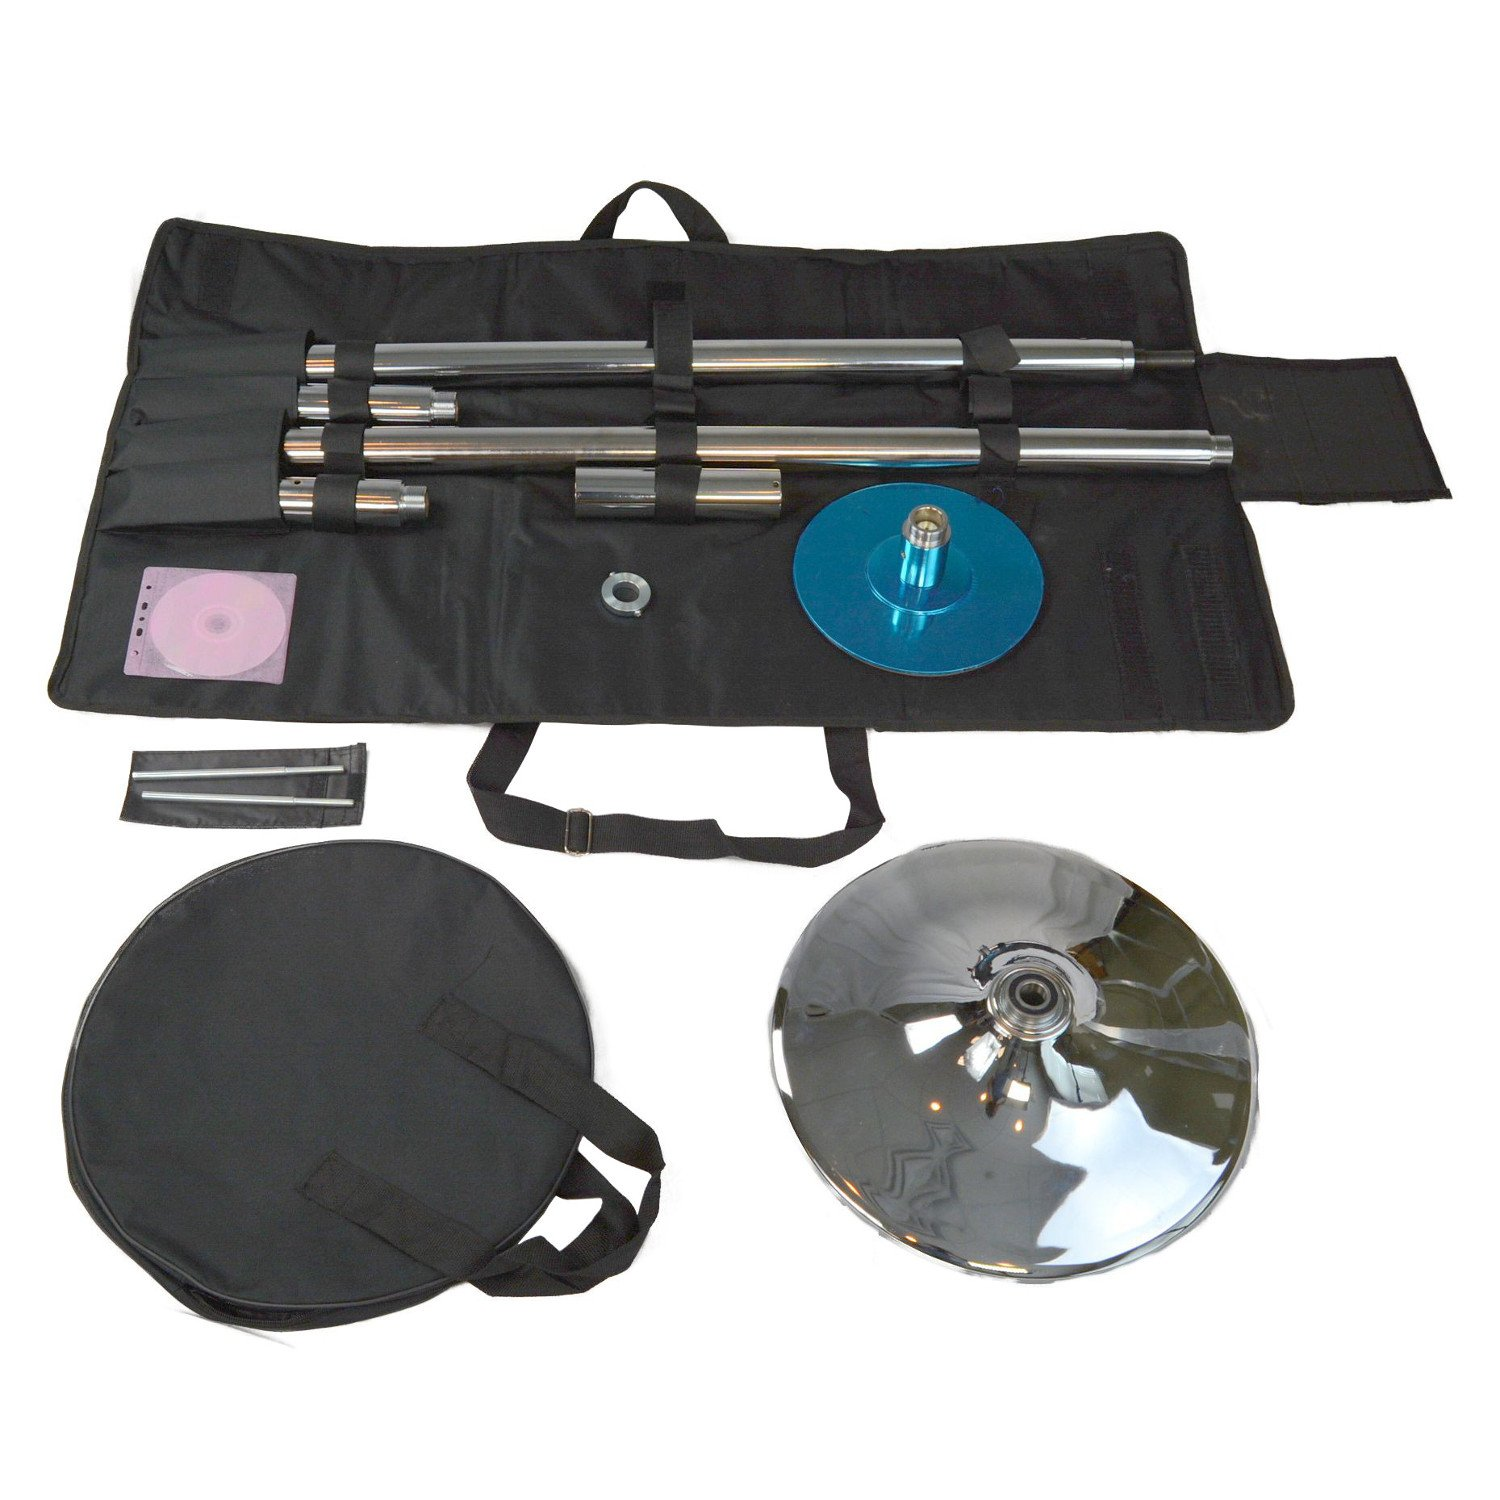 X-Dance Carrying Bag/Storage Case for Pole